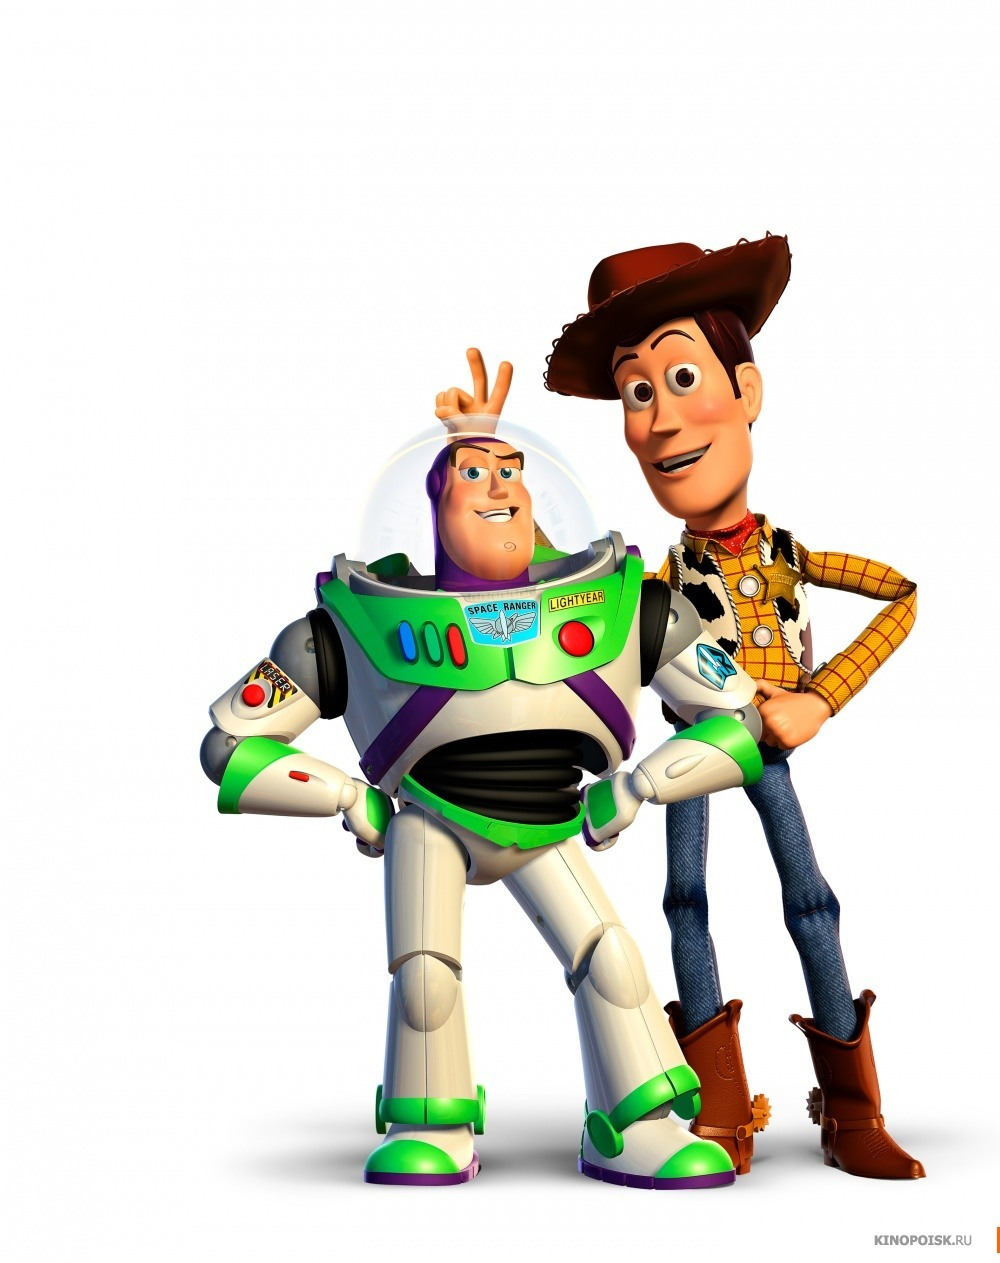 Toy Story 3, 2010 - Movies Photo (26144105) - Fanpop